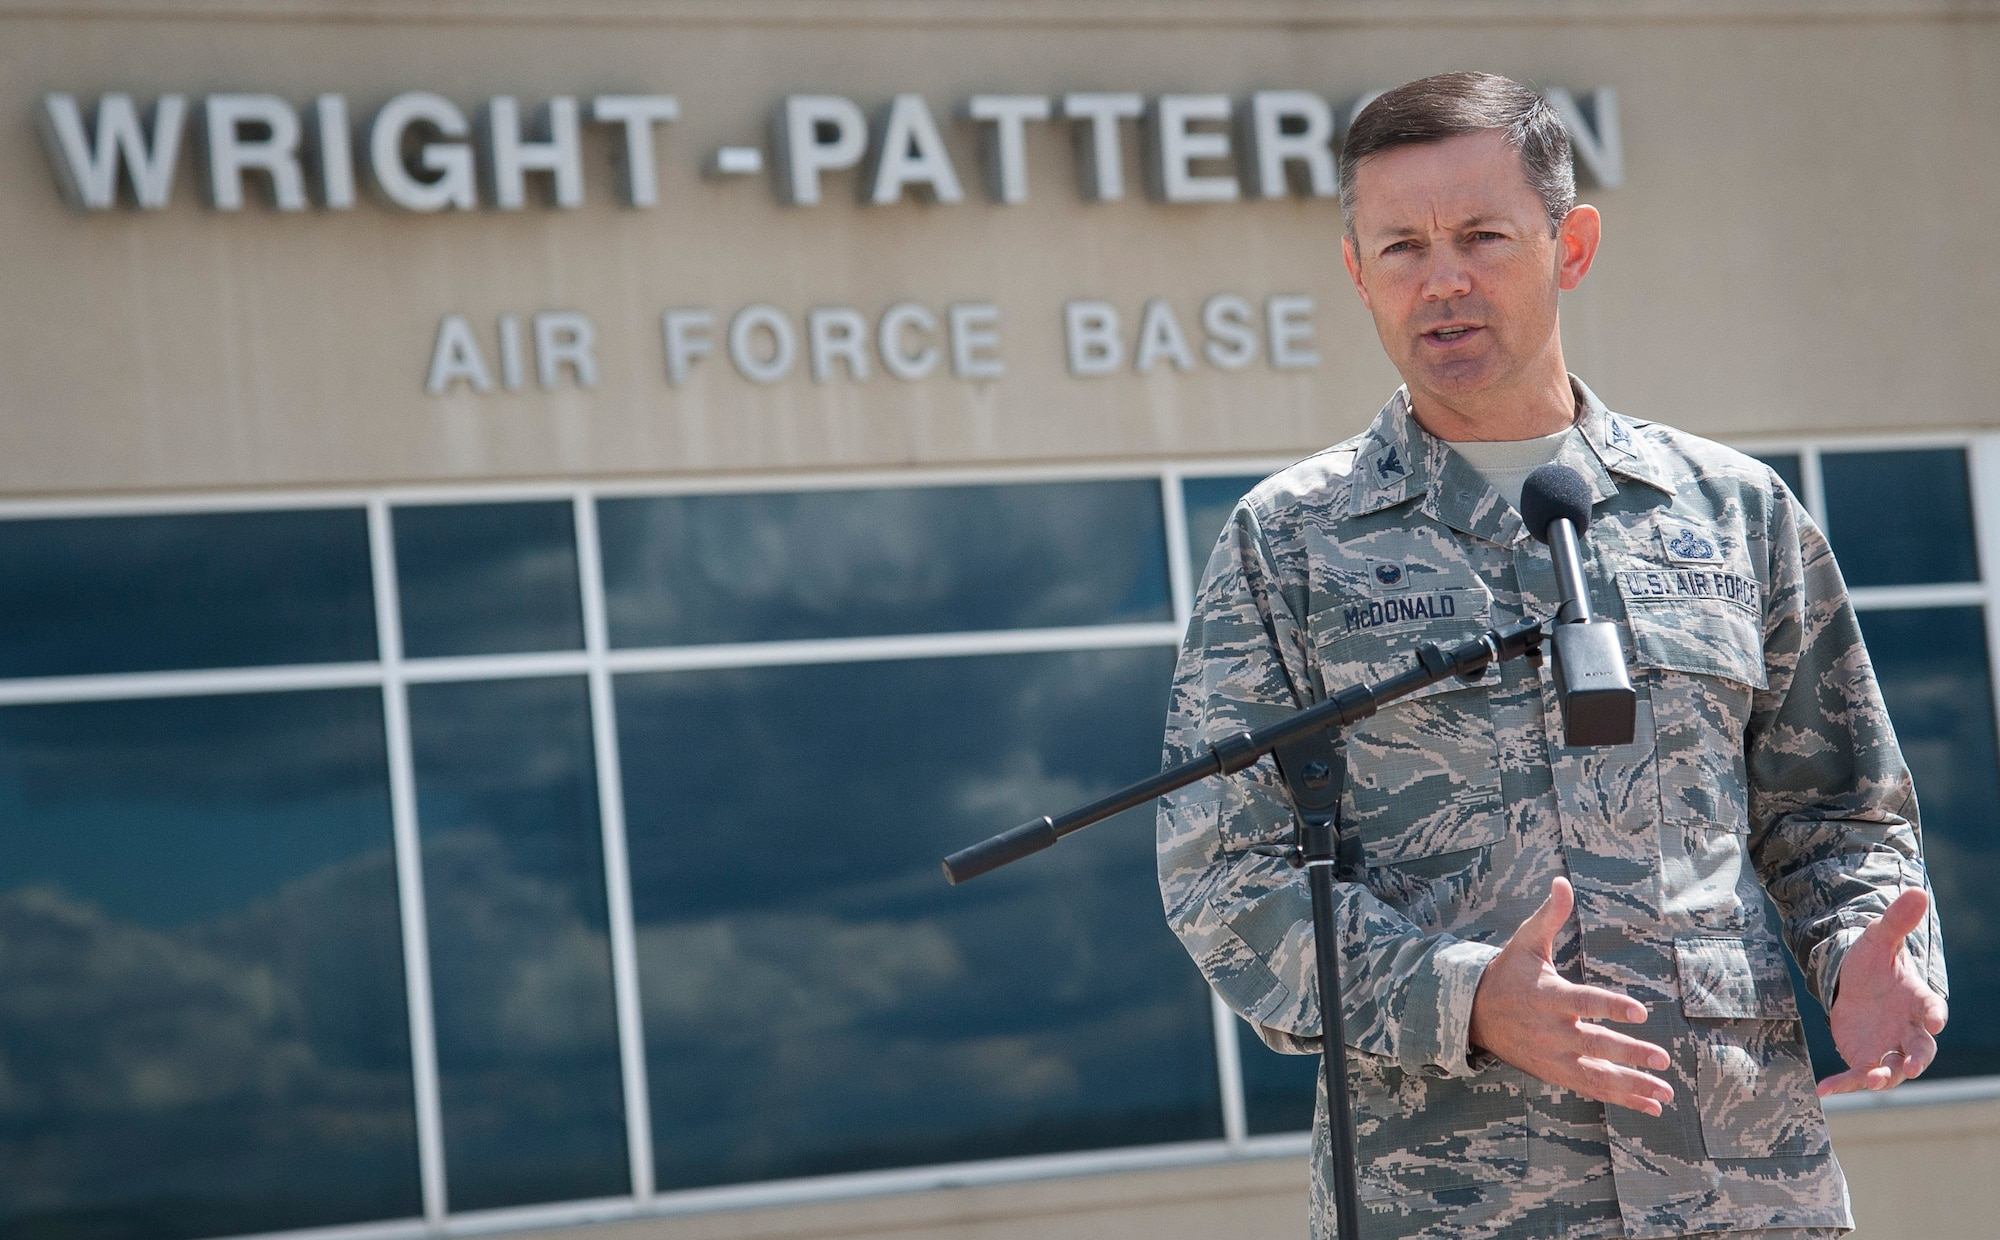 Installation commander and 88th Air Base Wing Commander Col. Bradley McDonald briefs the media on plans to receive Air Force aircraft evacuating from areas being affected by Hurricane Irma. (U.S. Air Force photo/Jim Varhegyi)